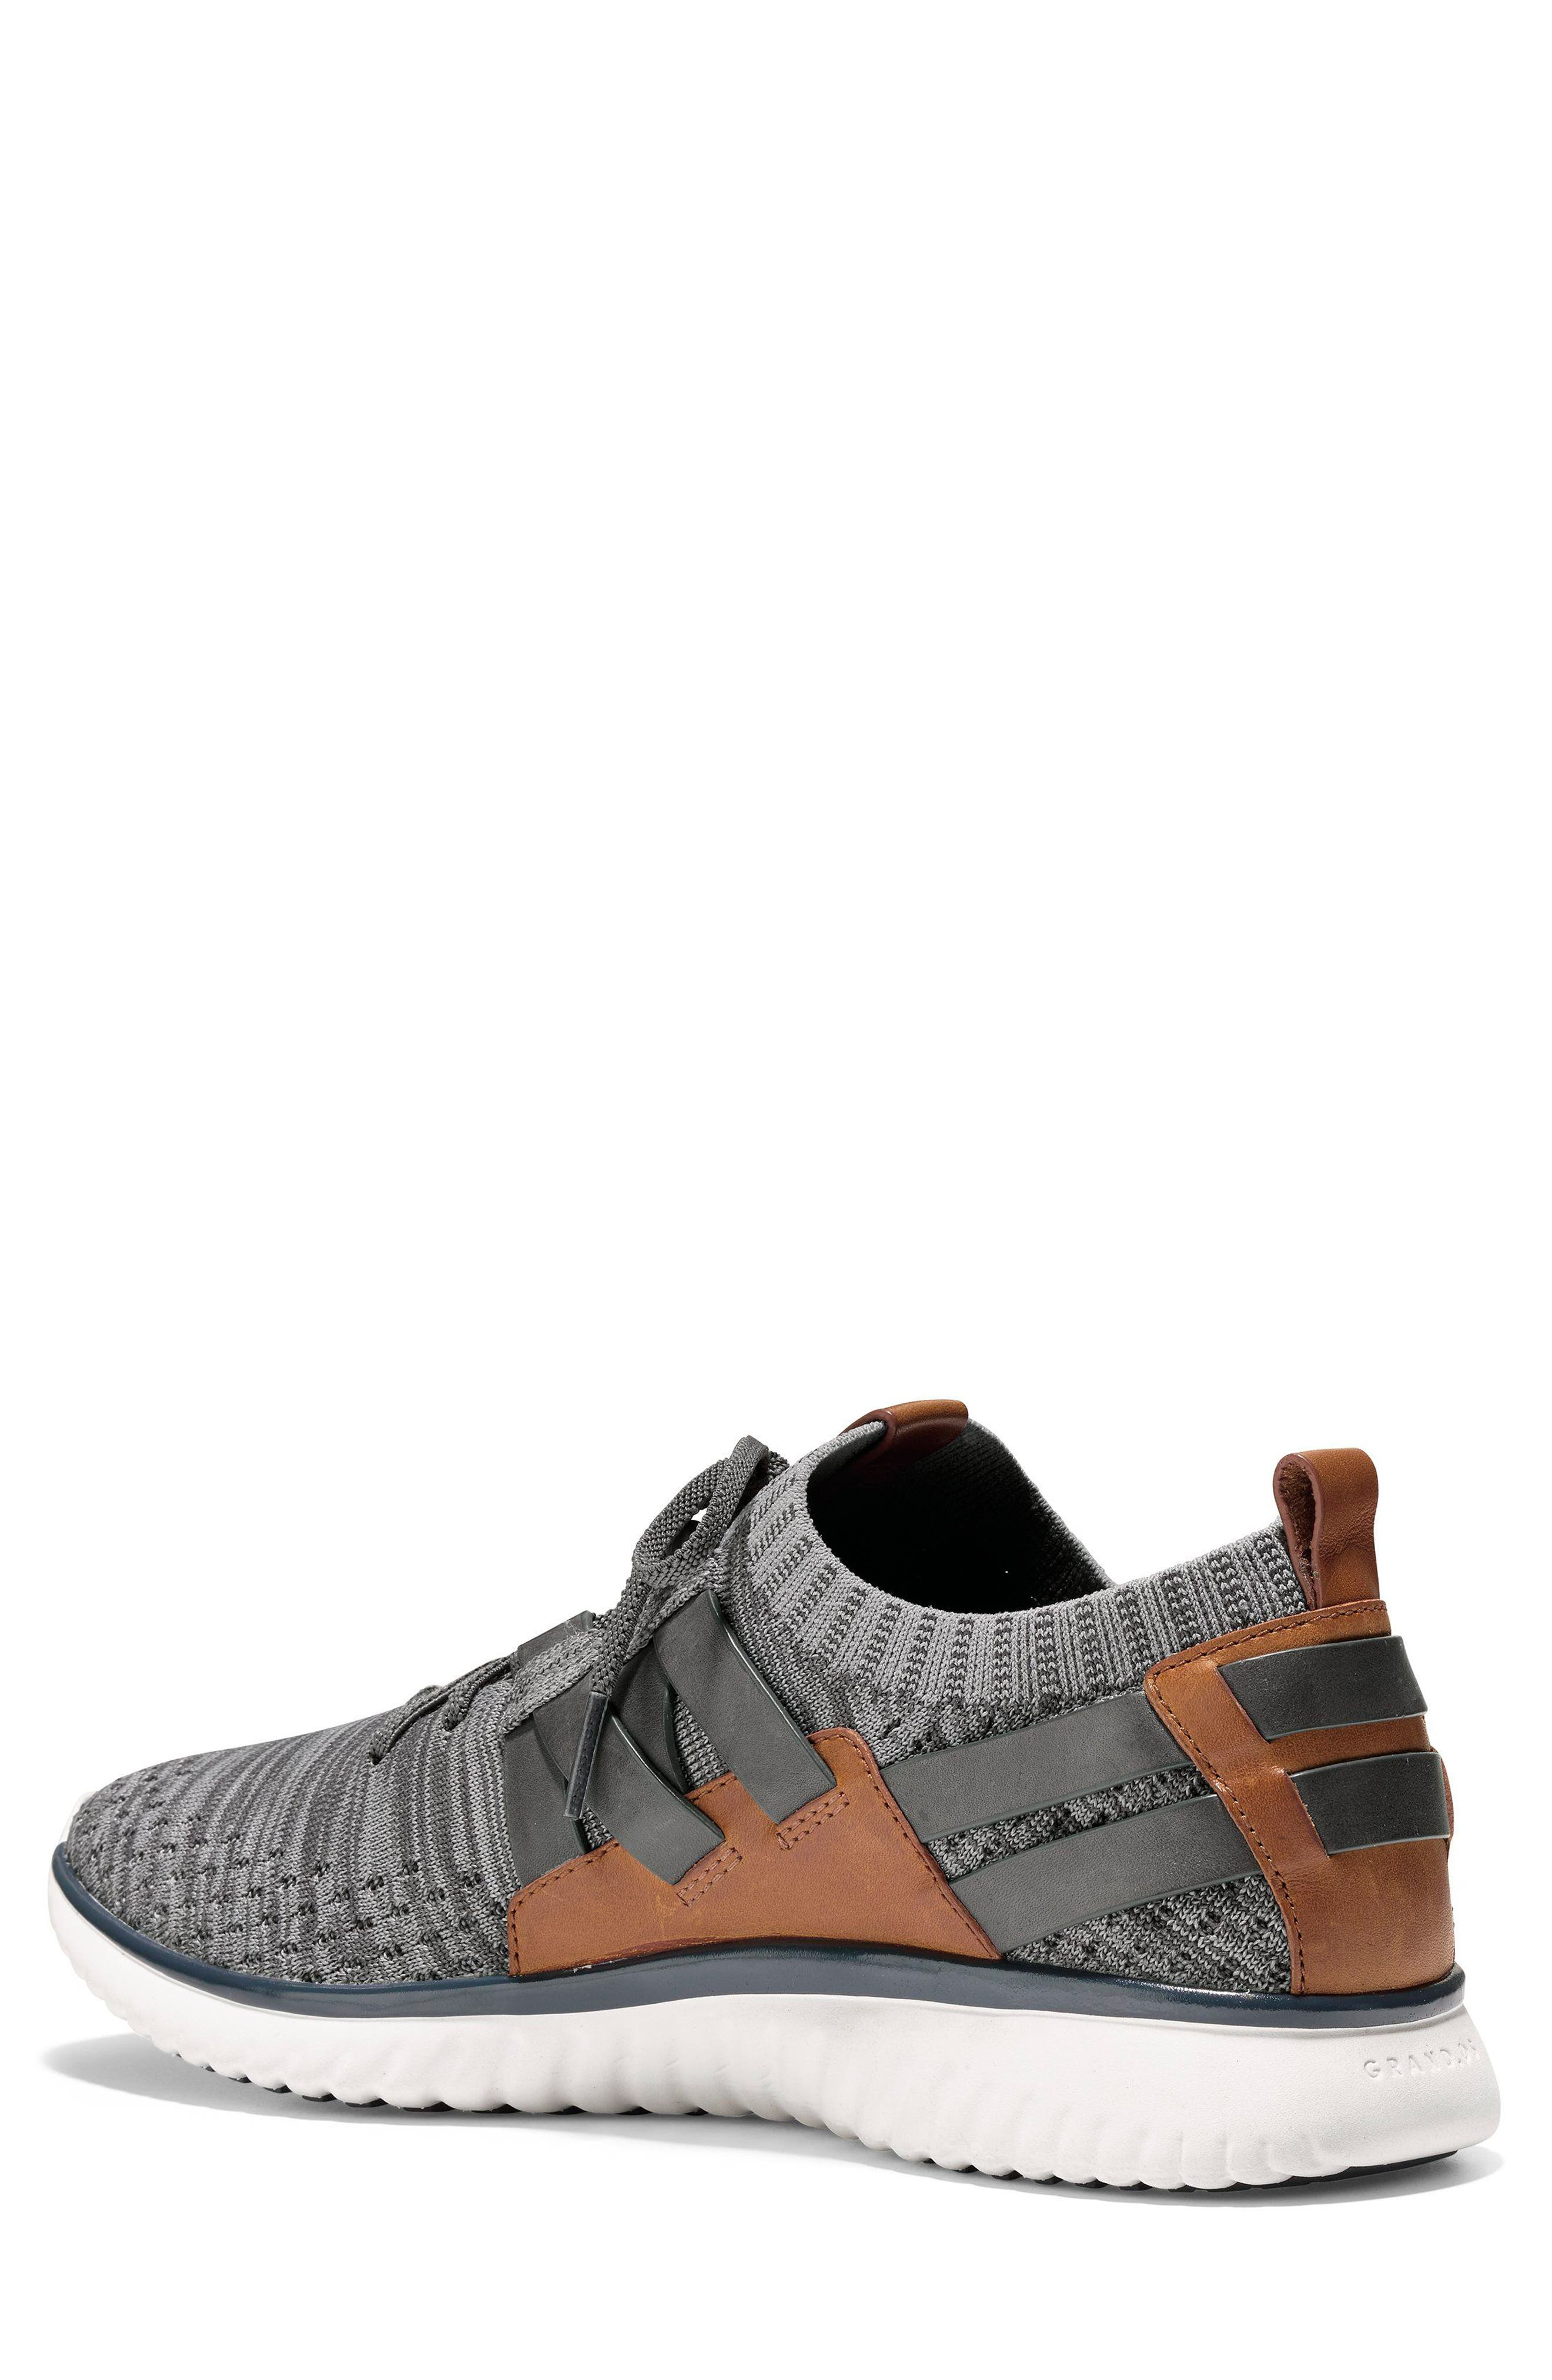 COLE HAAN,                             Grand Motion Sneaker,                             Alternate thumbnail 2, color,                             020